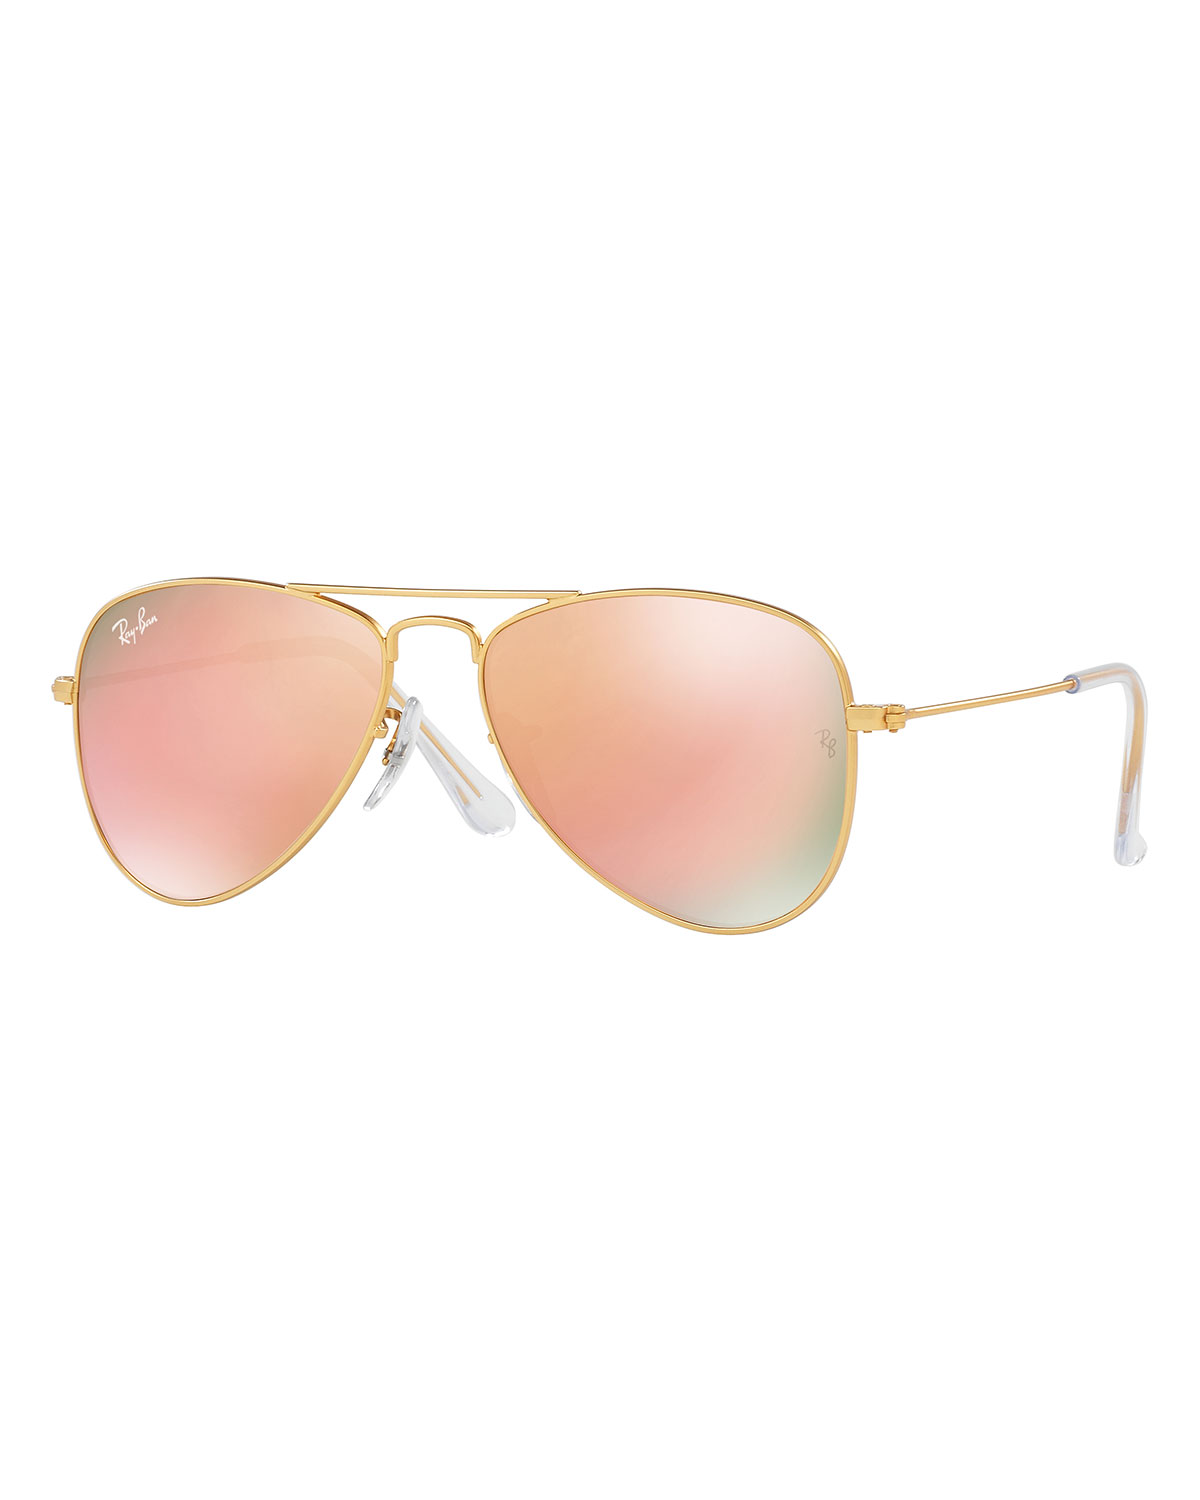 Iridescent Aviator Sunglasses, Gold/Copper